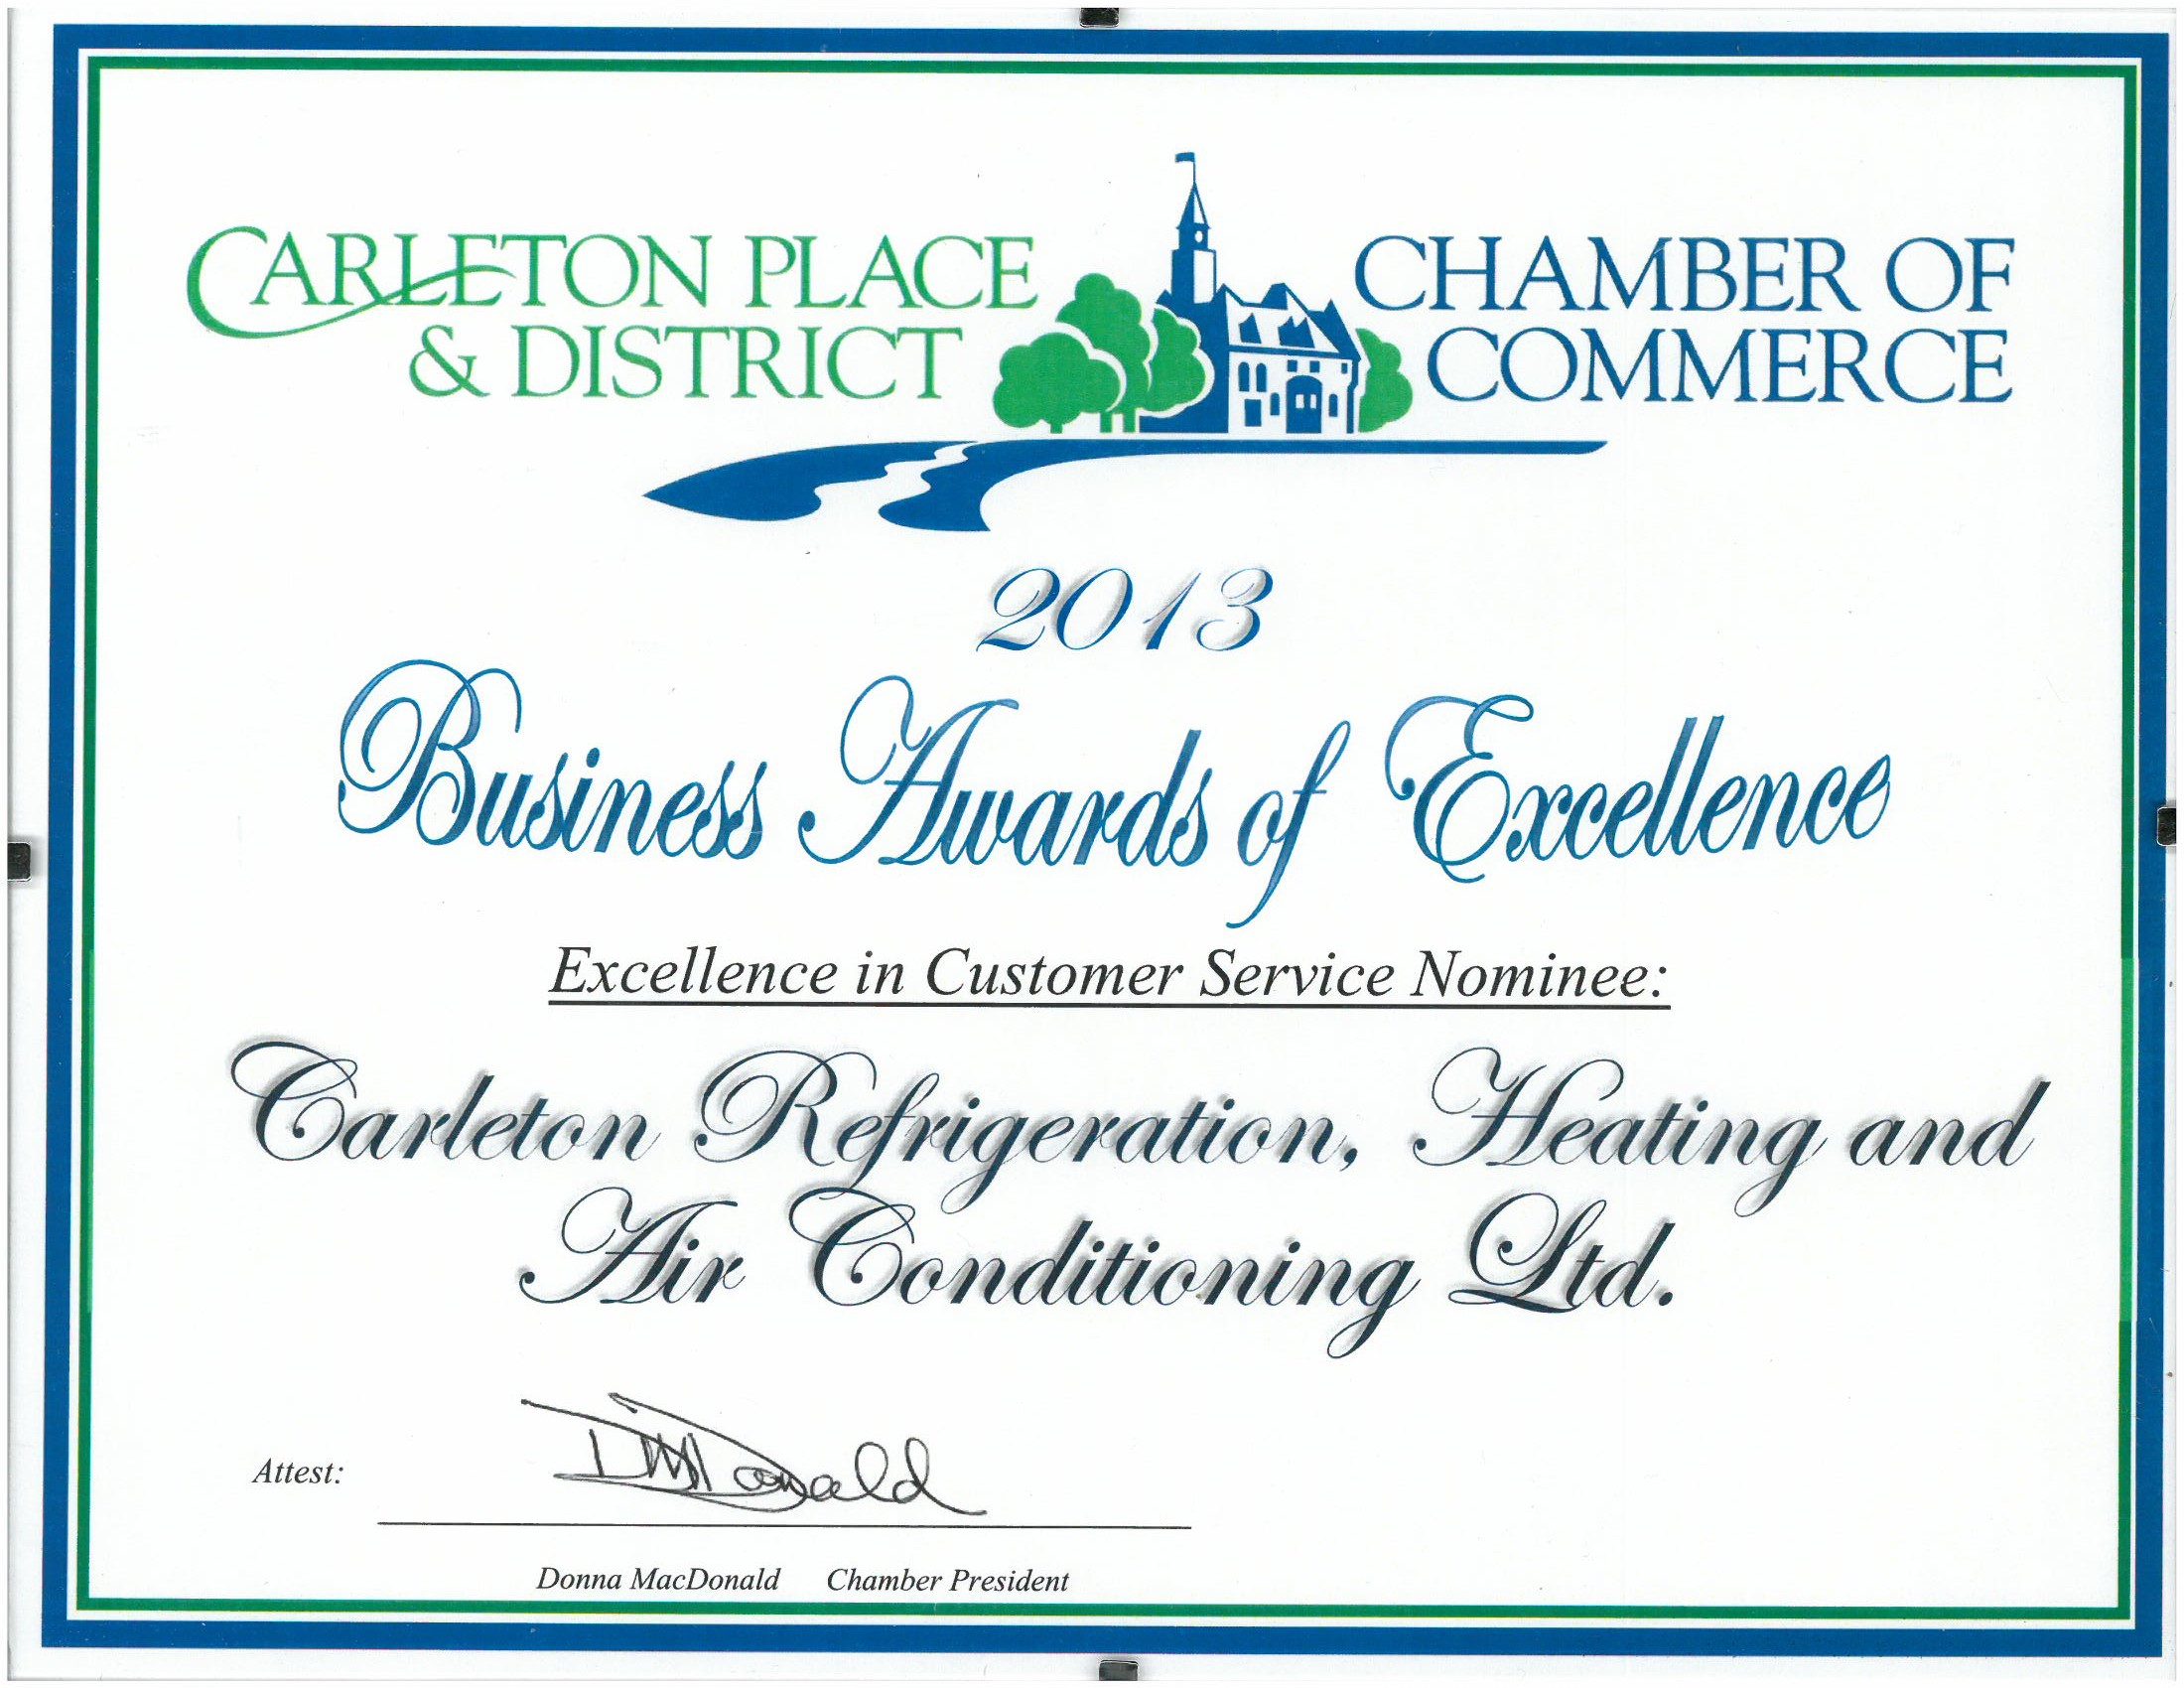 2013 Excellence In Customer Service Nominee